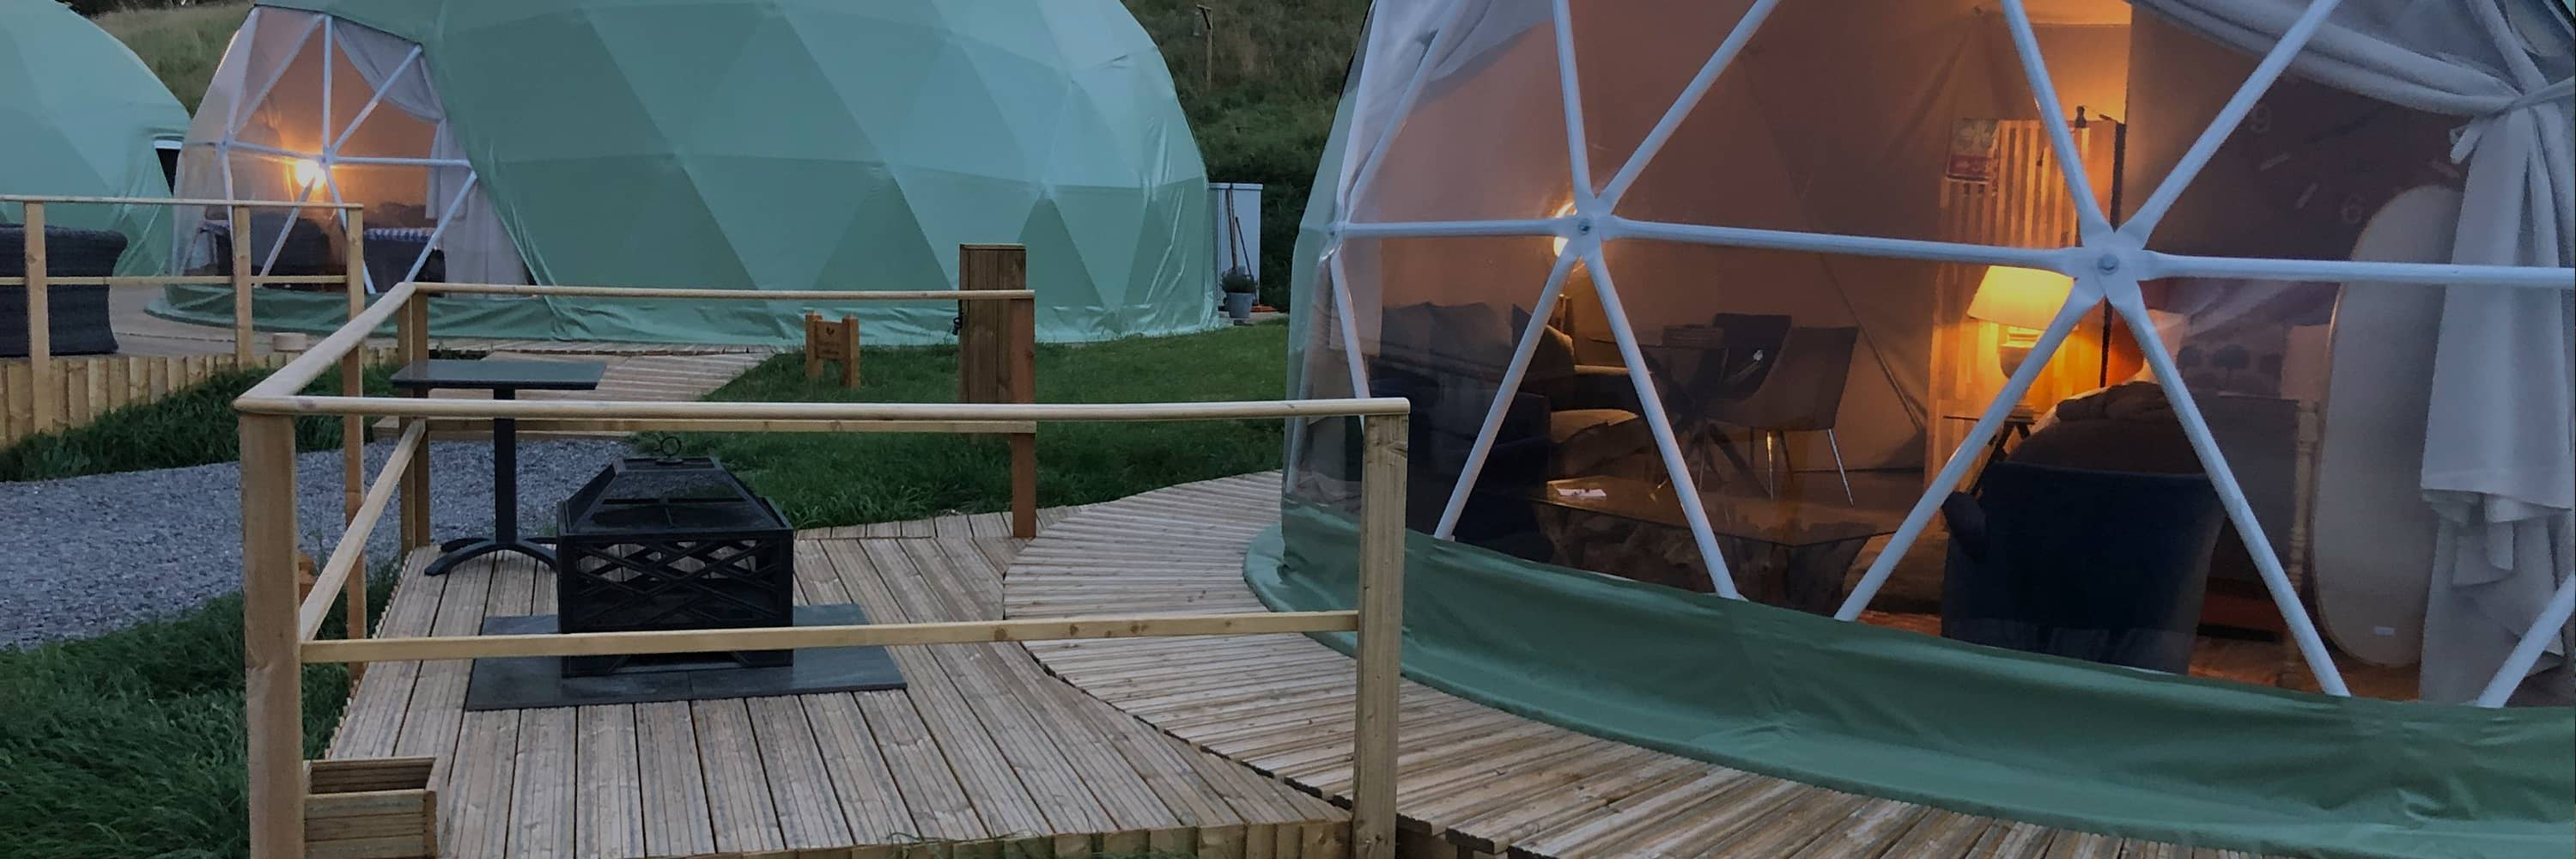 Luxury Dome Tents With Decking